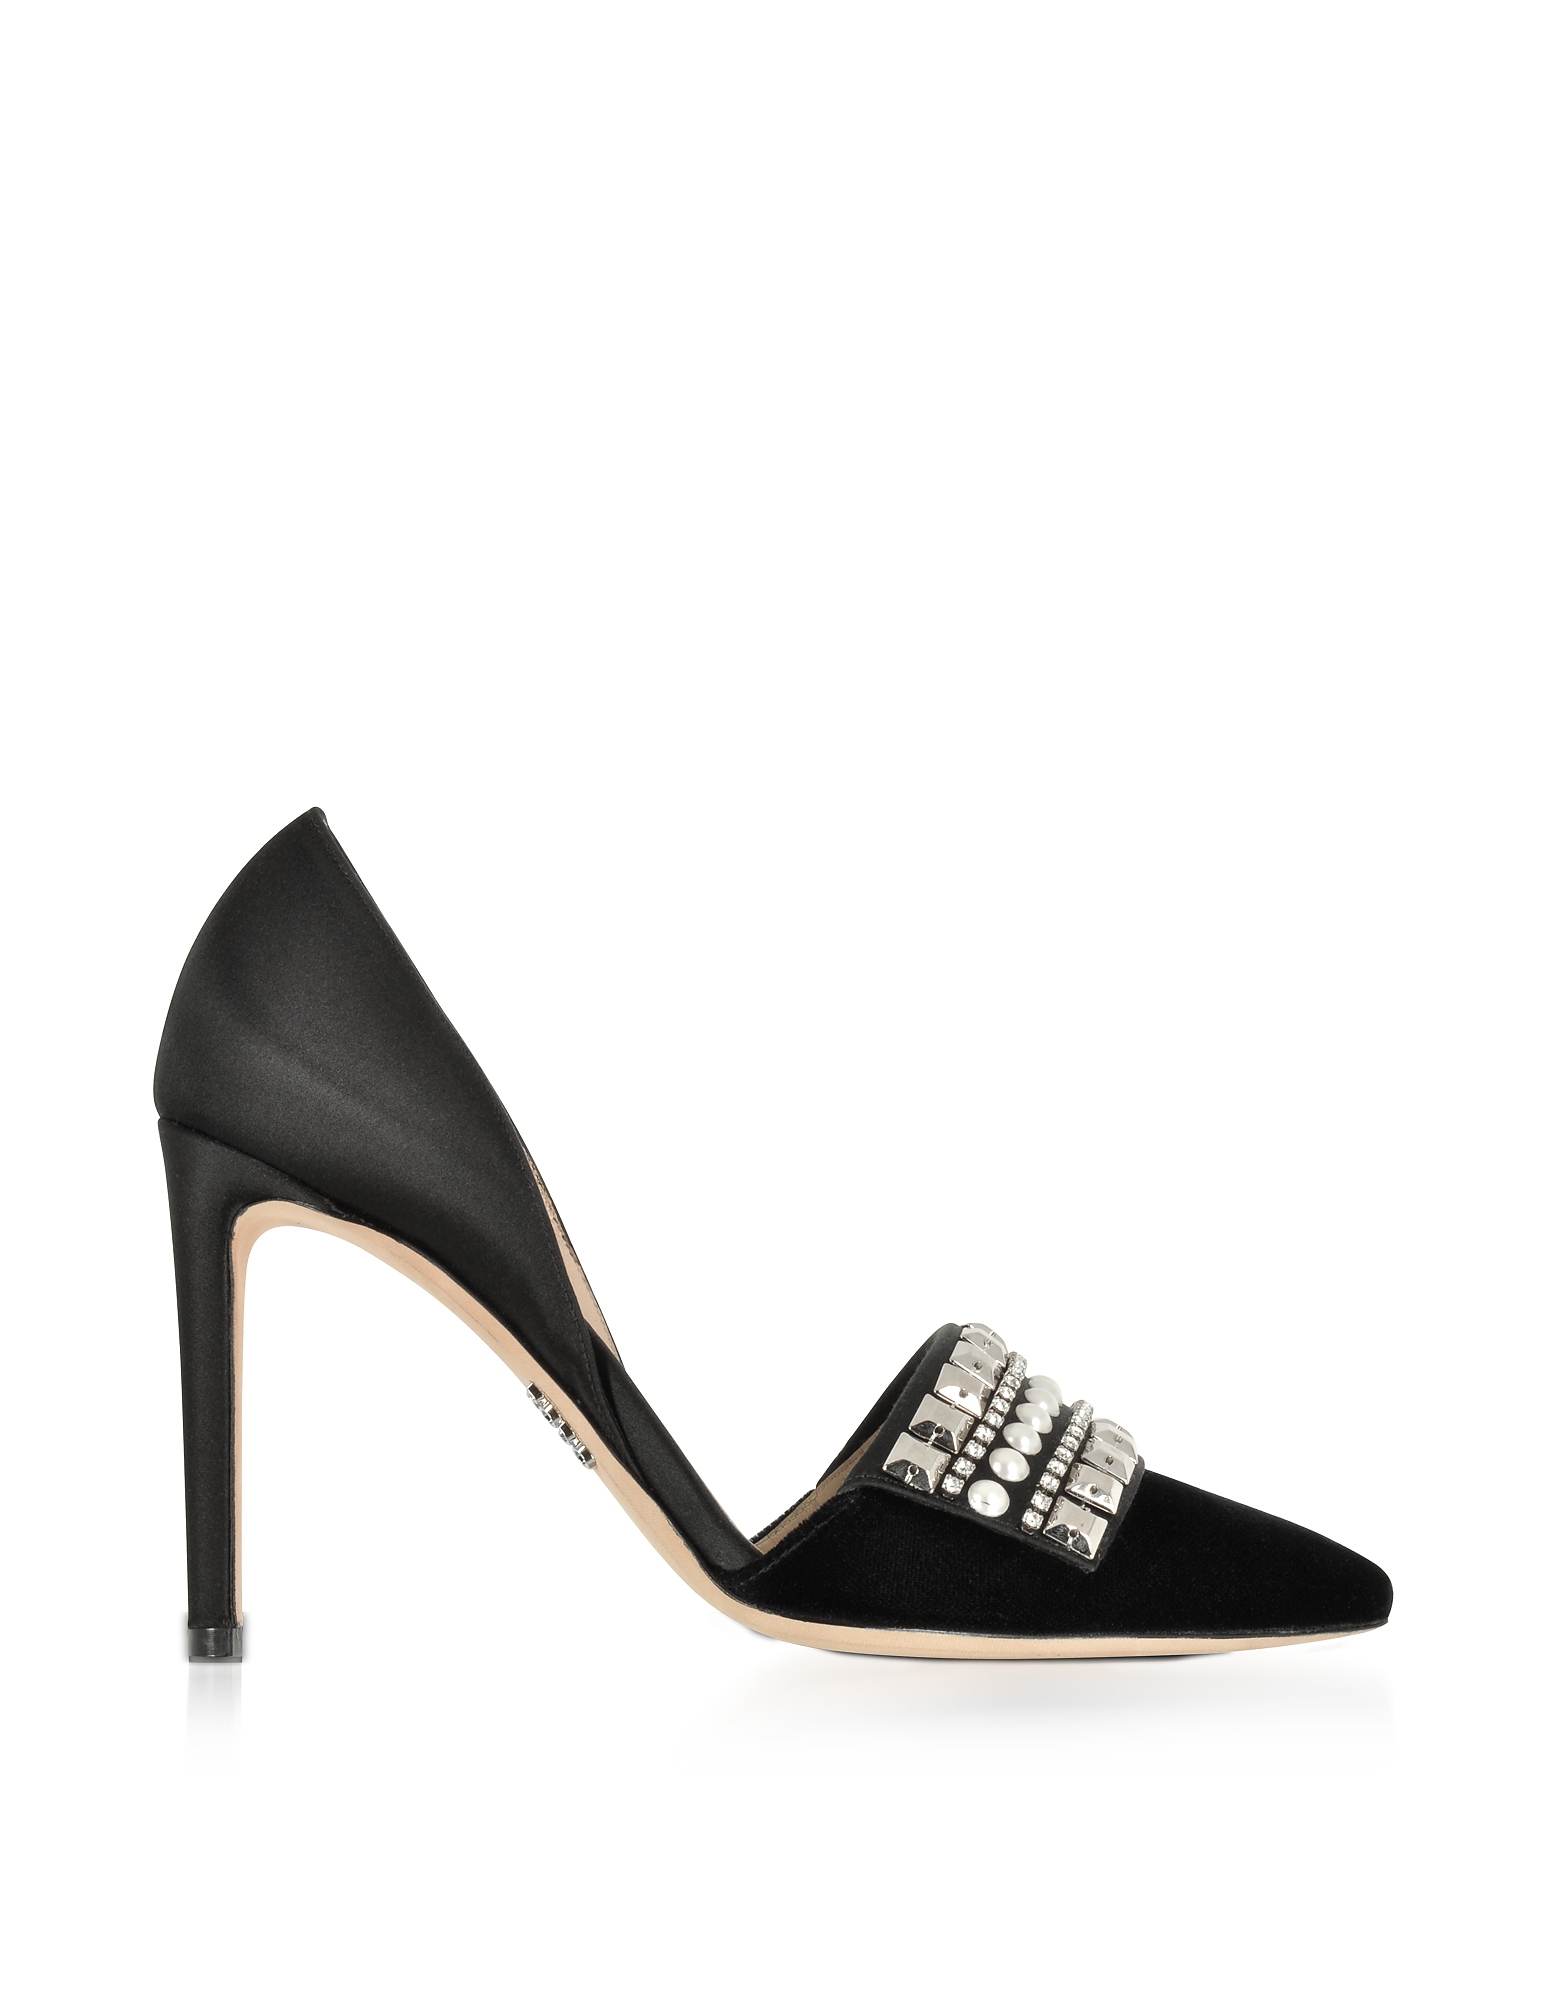 Rodo Shoes, Embellished Black Velvet and Satin High Heel Pumps